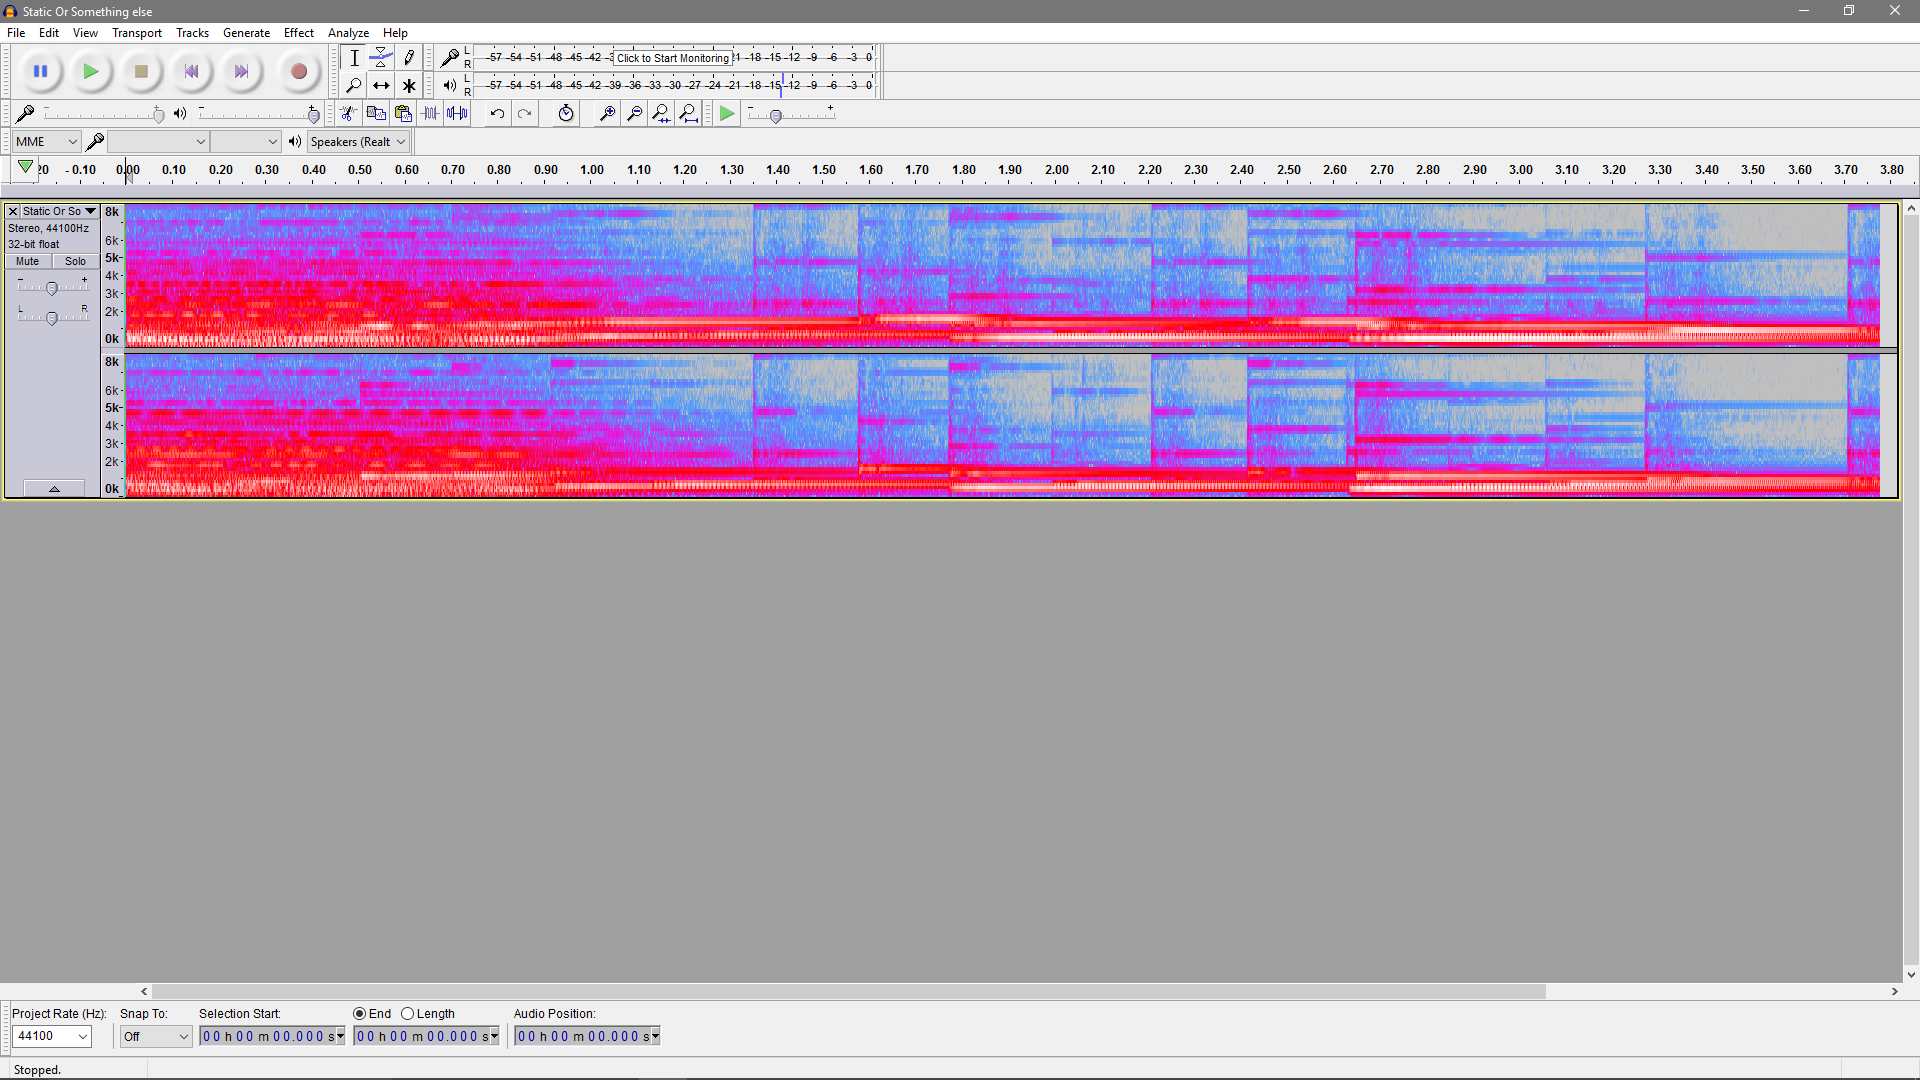 Spectrogram New Sound.png